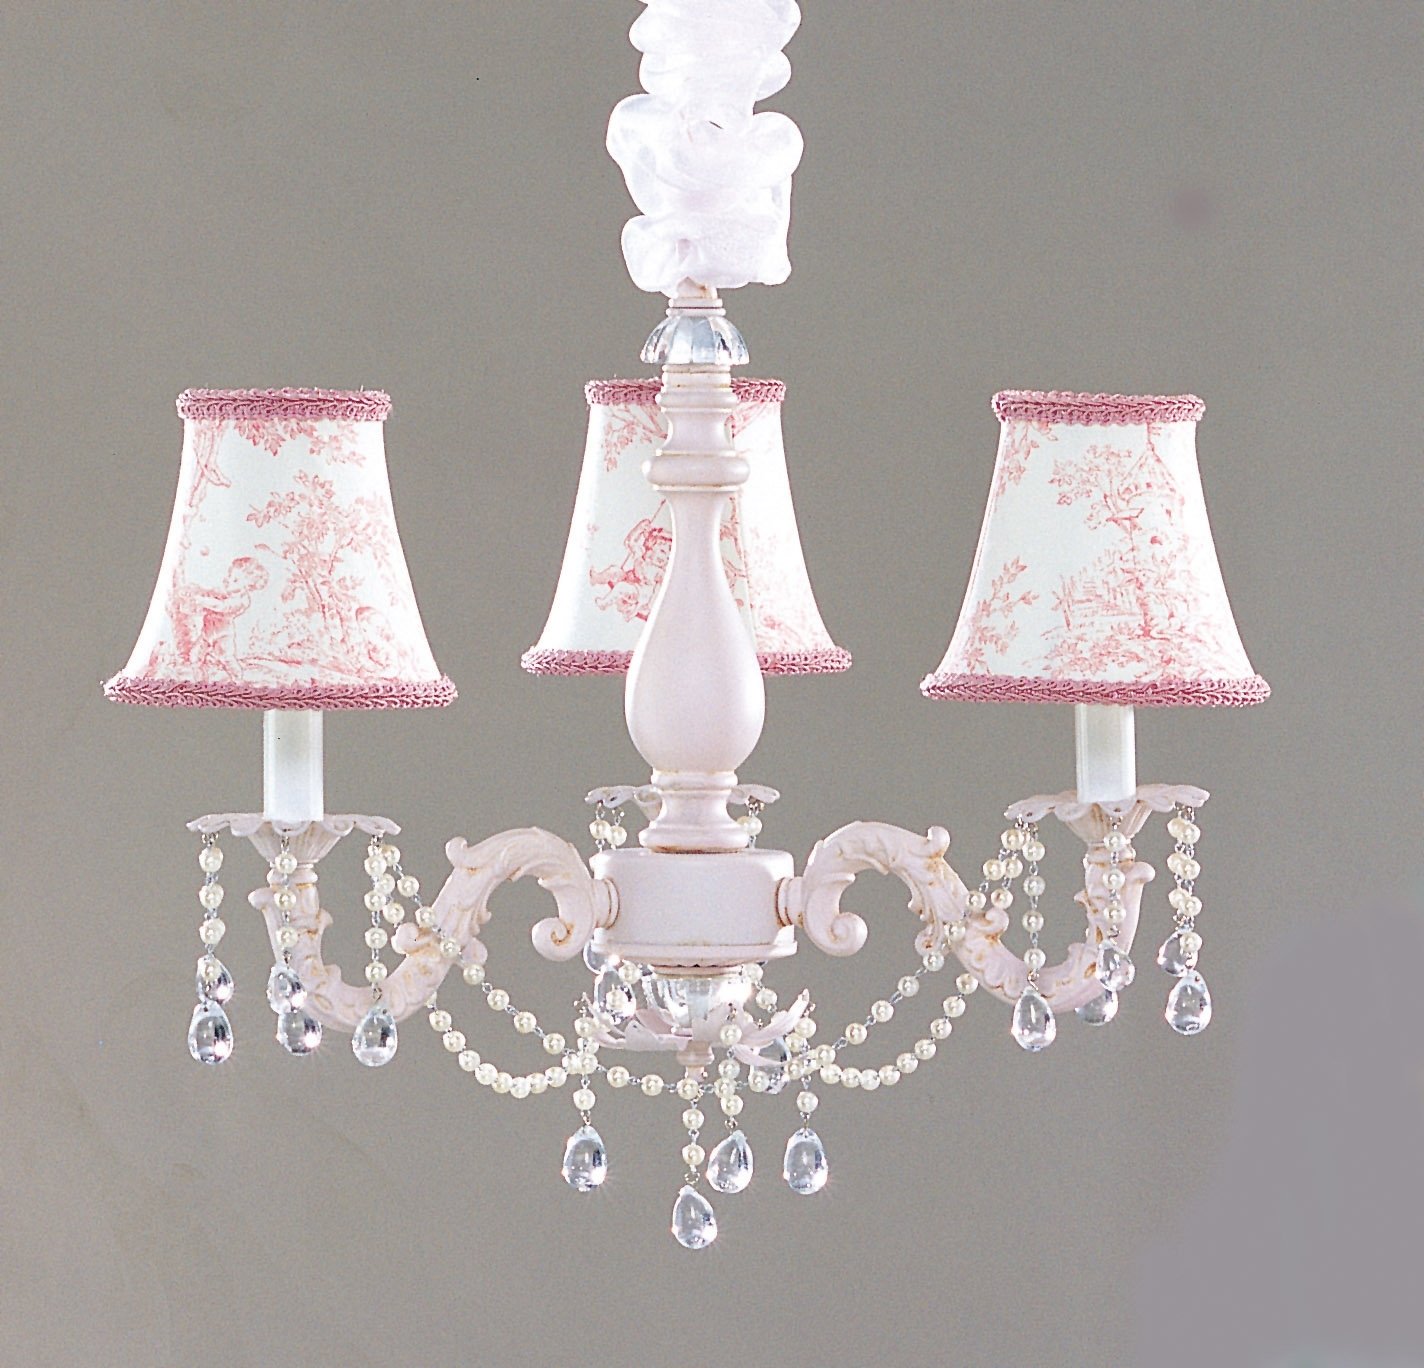 Small Shabby Chic Chandelier Throughout Latest Lamp Chandelier Shabby Chic – Closdurocnoir (View 14 of 15)